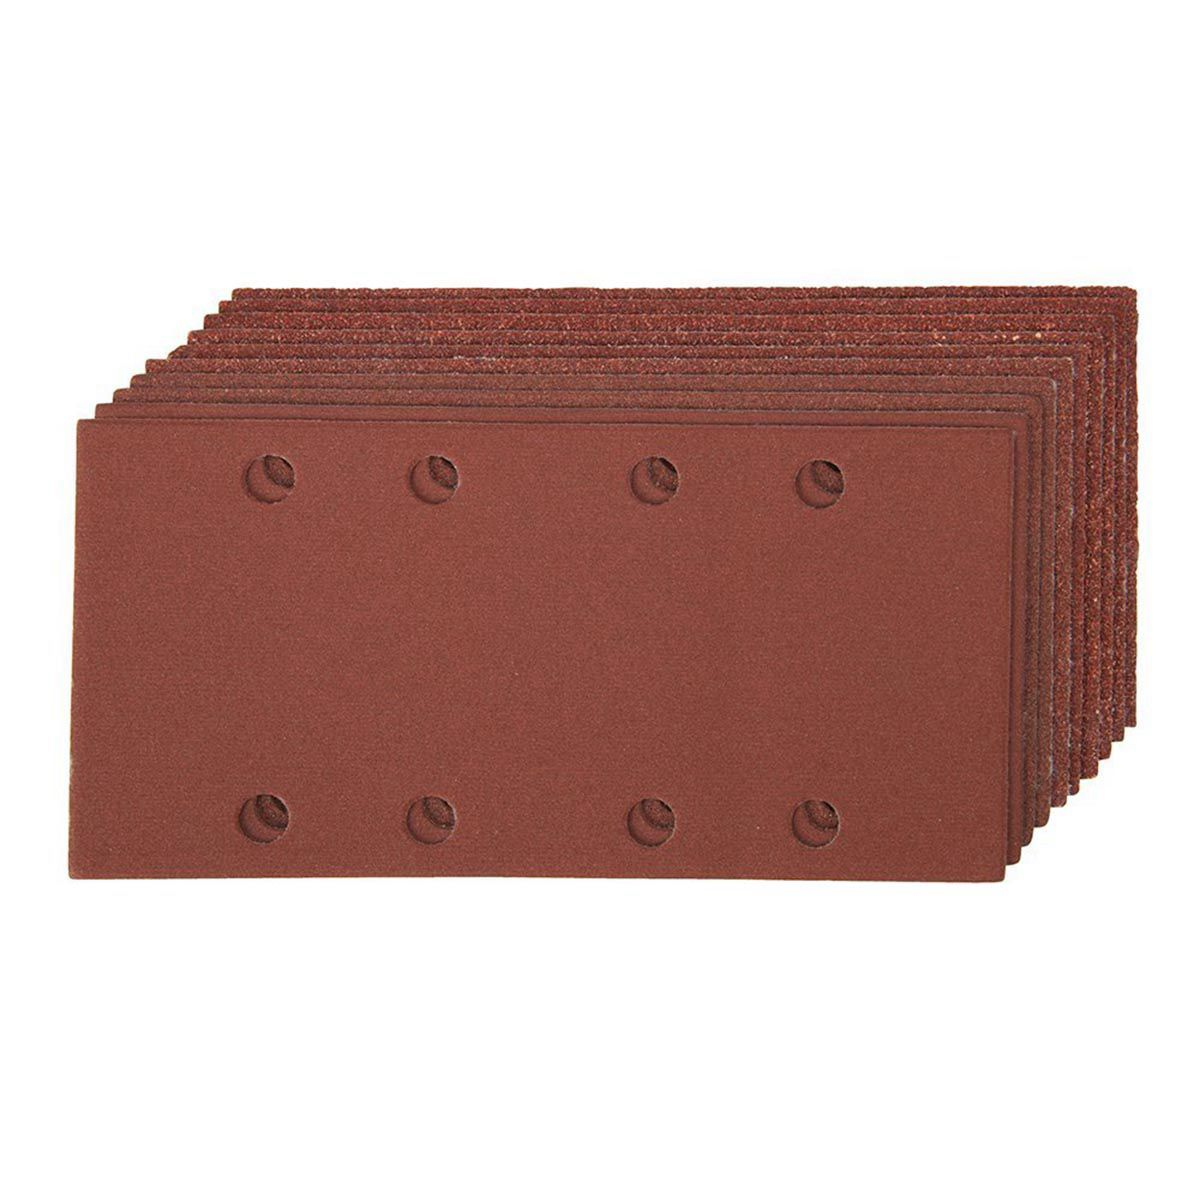 New Style Hook/Loop 1/3 Sheet Sanding Sander Sandpaper Pads 20 Pack Mixed Grit 40 120 Sandpaper